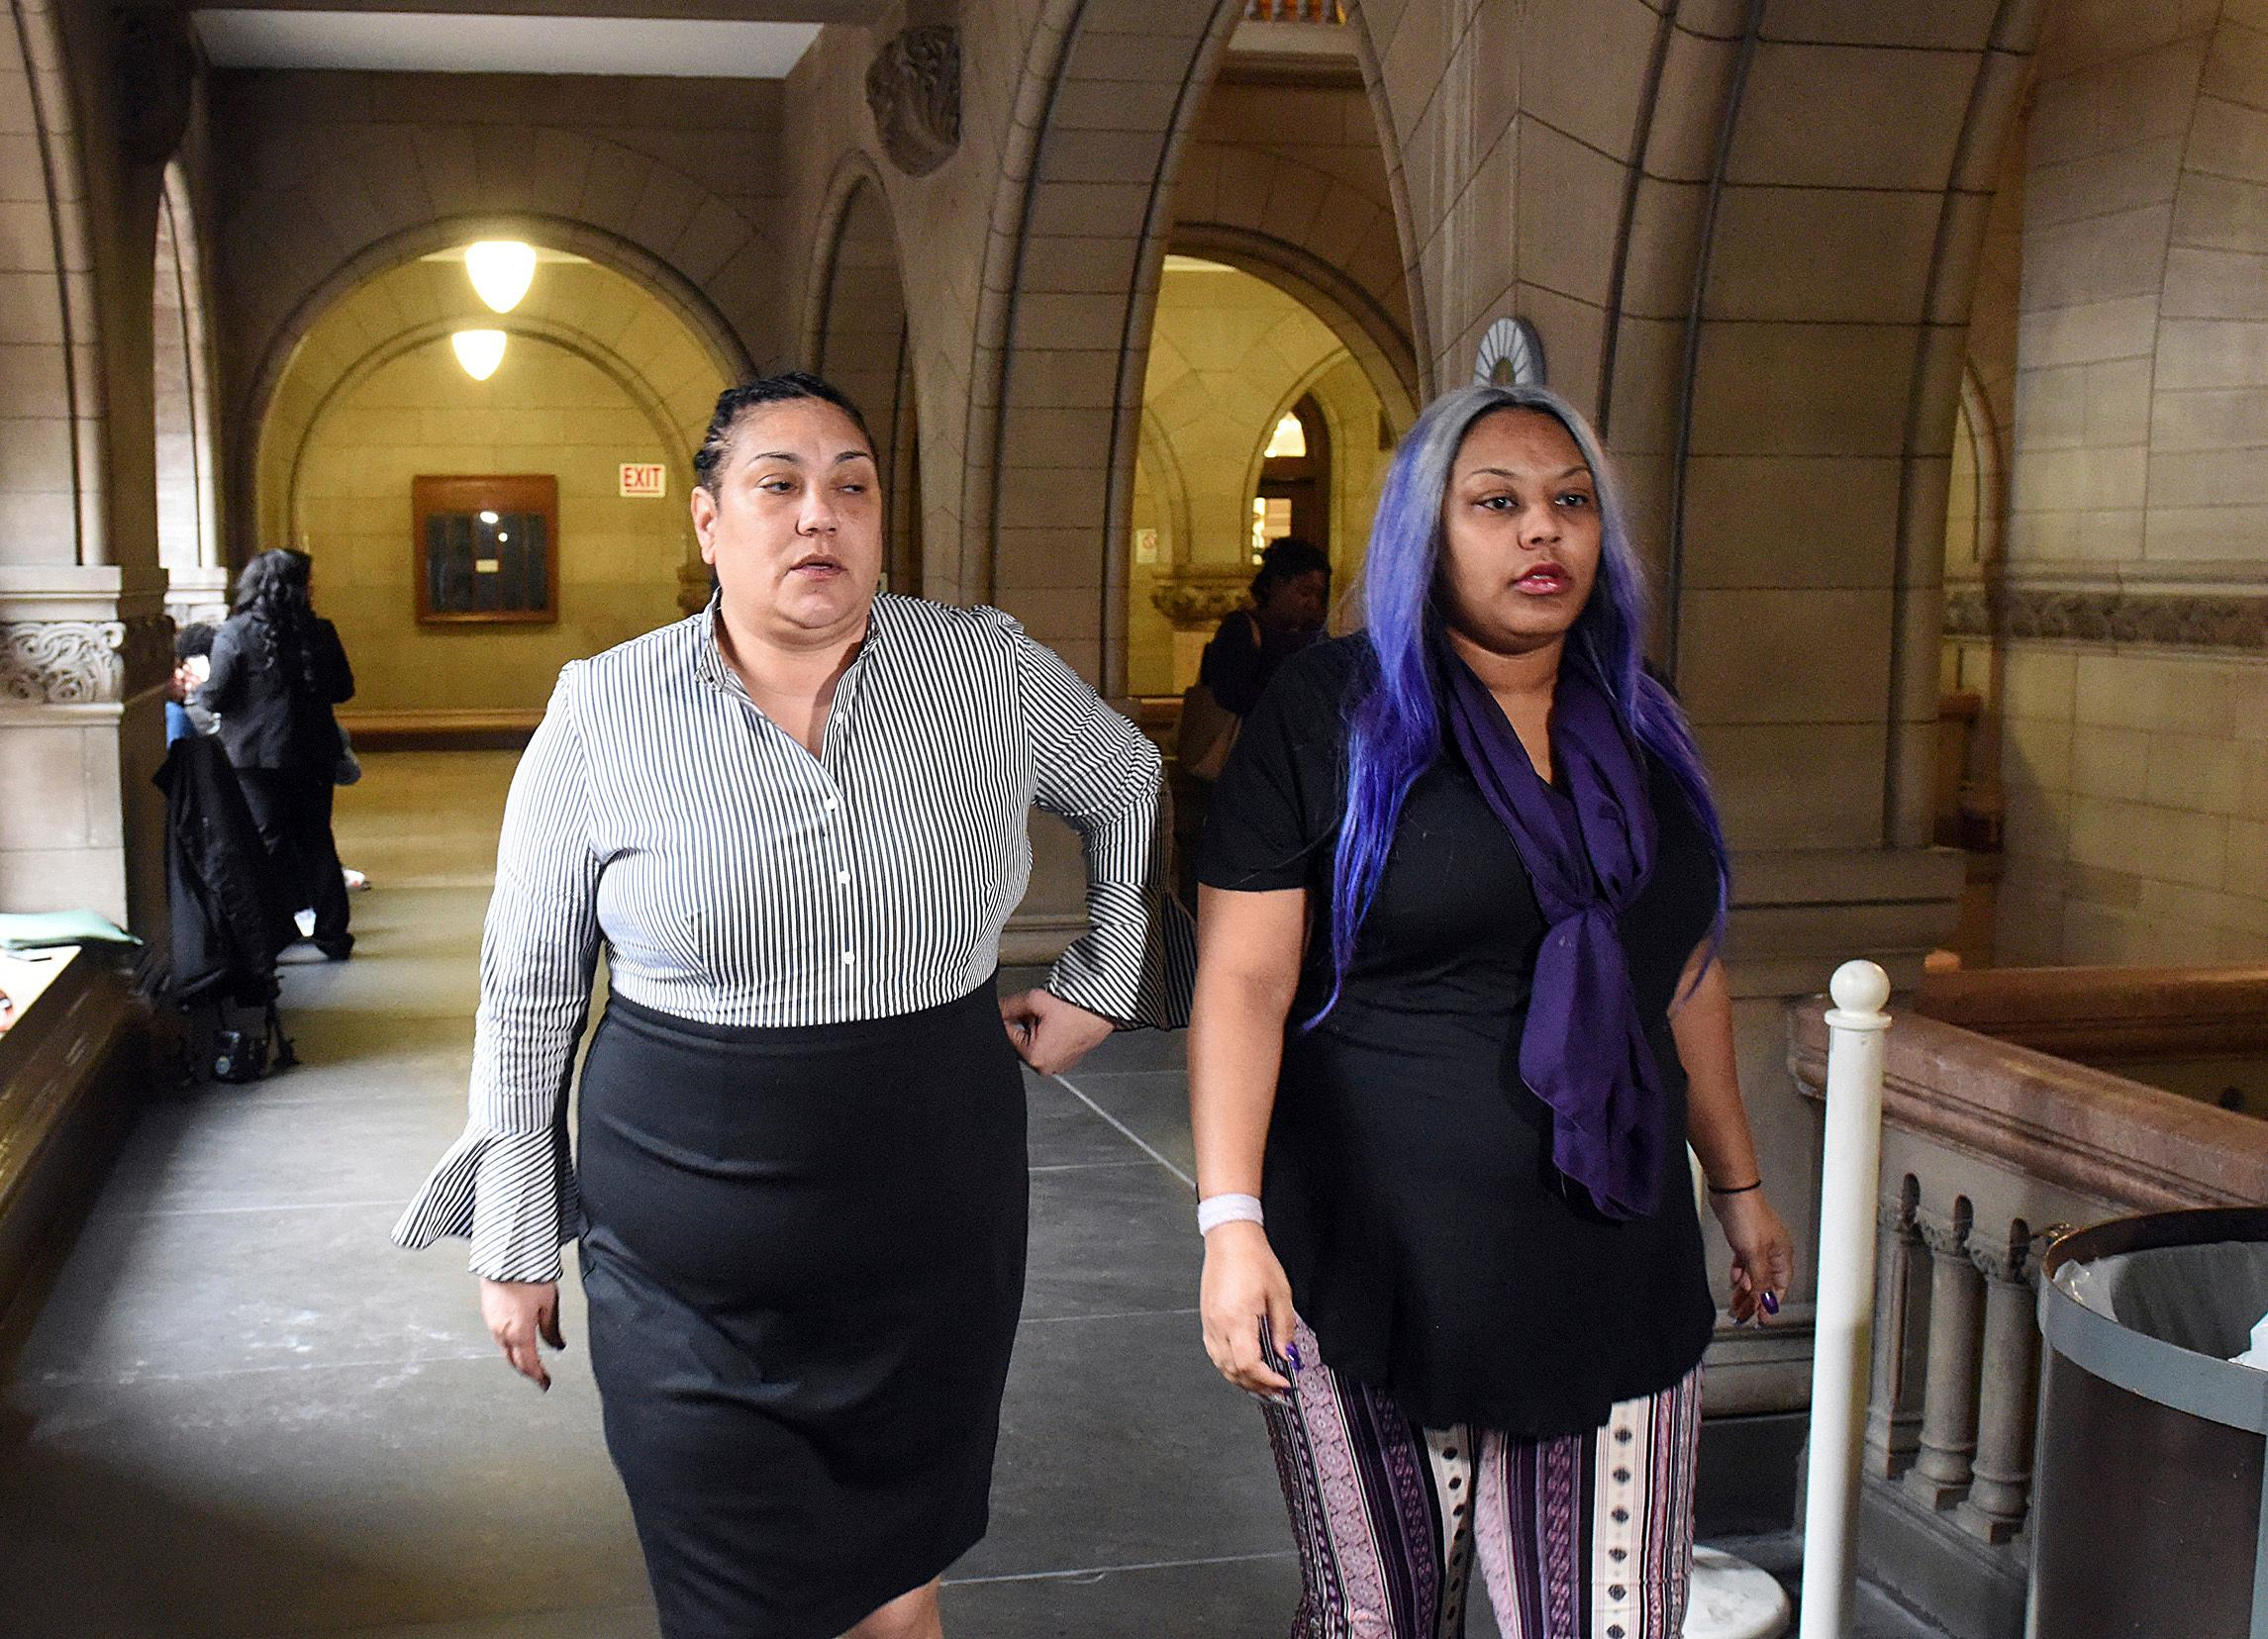 Michelle Kenney, left, mother of Antwon Rose II, and her daughter, Kyra Jamison, make their way back to the courtroom at the Allegheny County Courthouse in Pittsburgh on Thursday, March 21, 2019.{ } (Darrell Sapp/Pittsburgh Post-Gazette via AP, Pool)